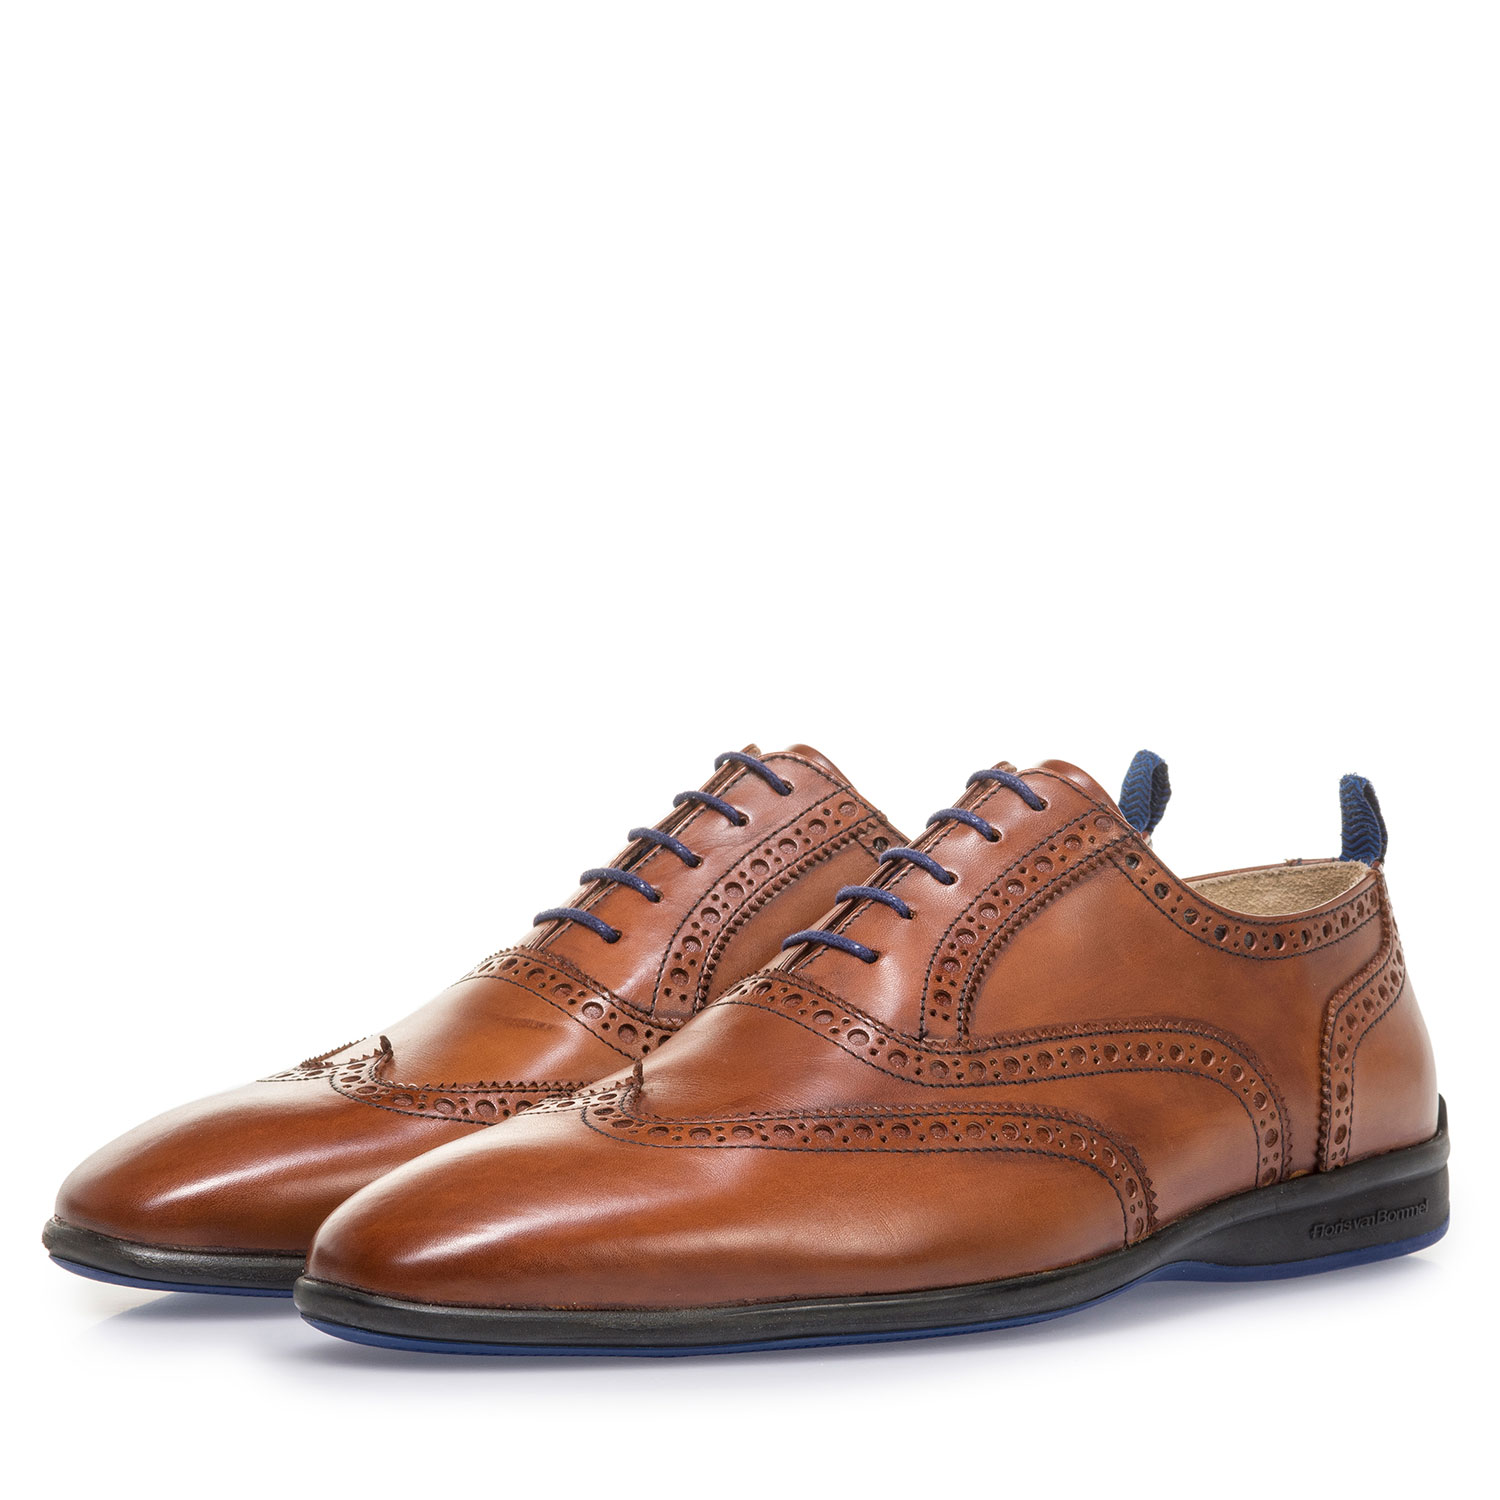 16360/07 - Dark cognac-coloured calf leather lace shoe